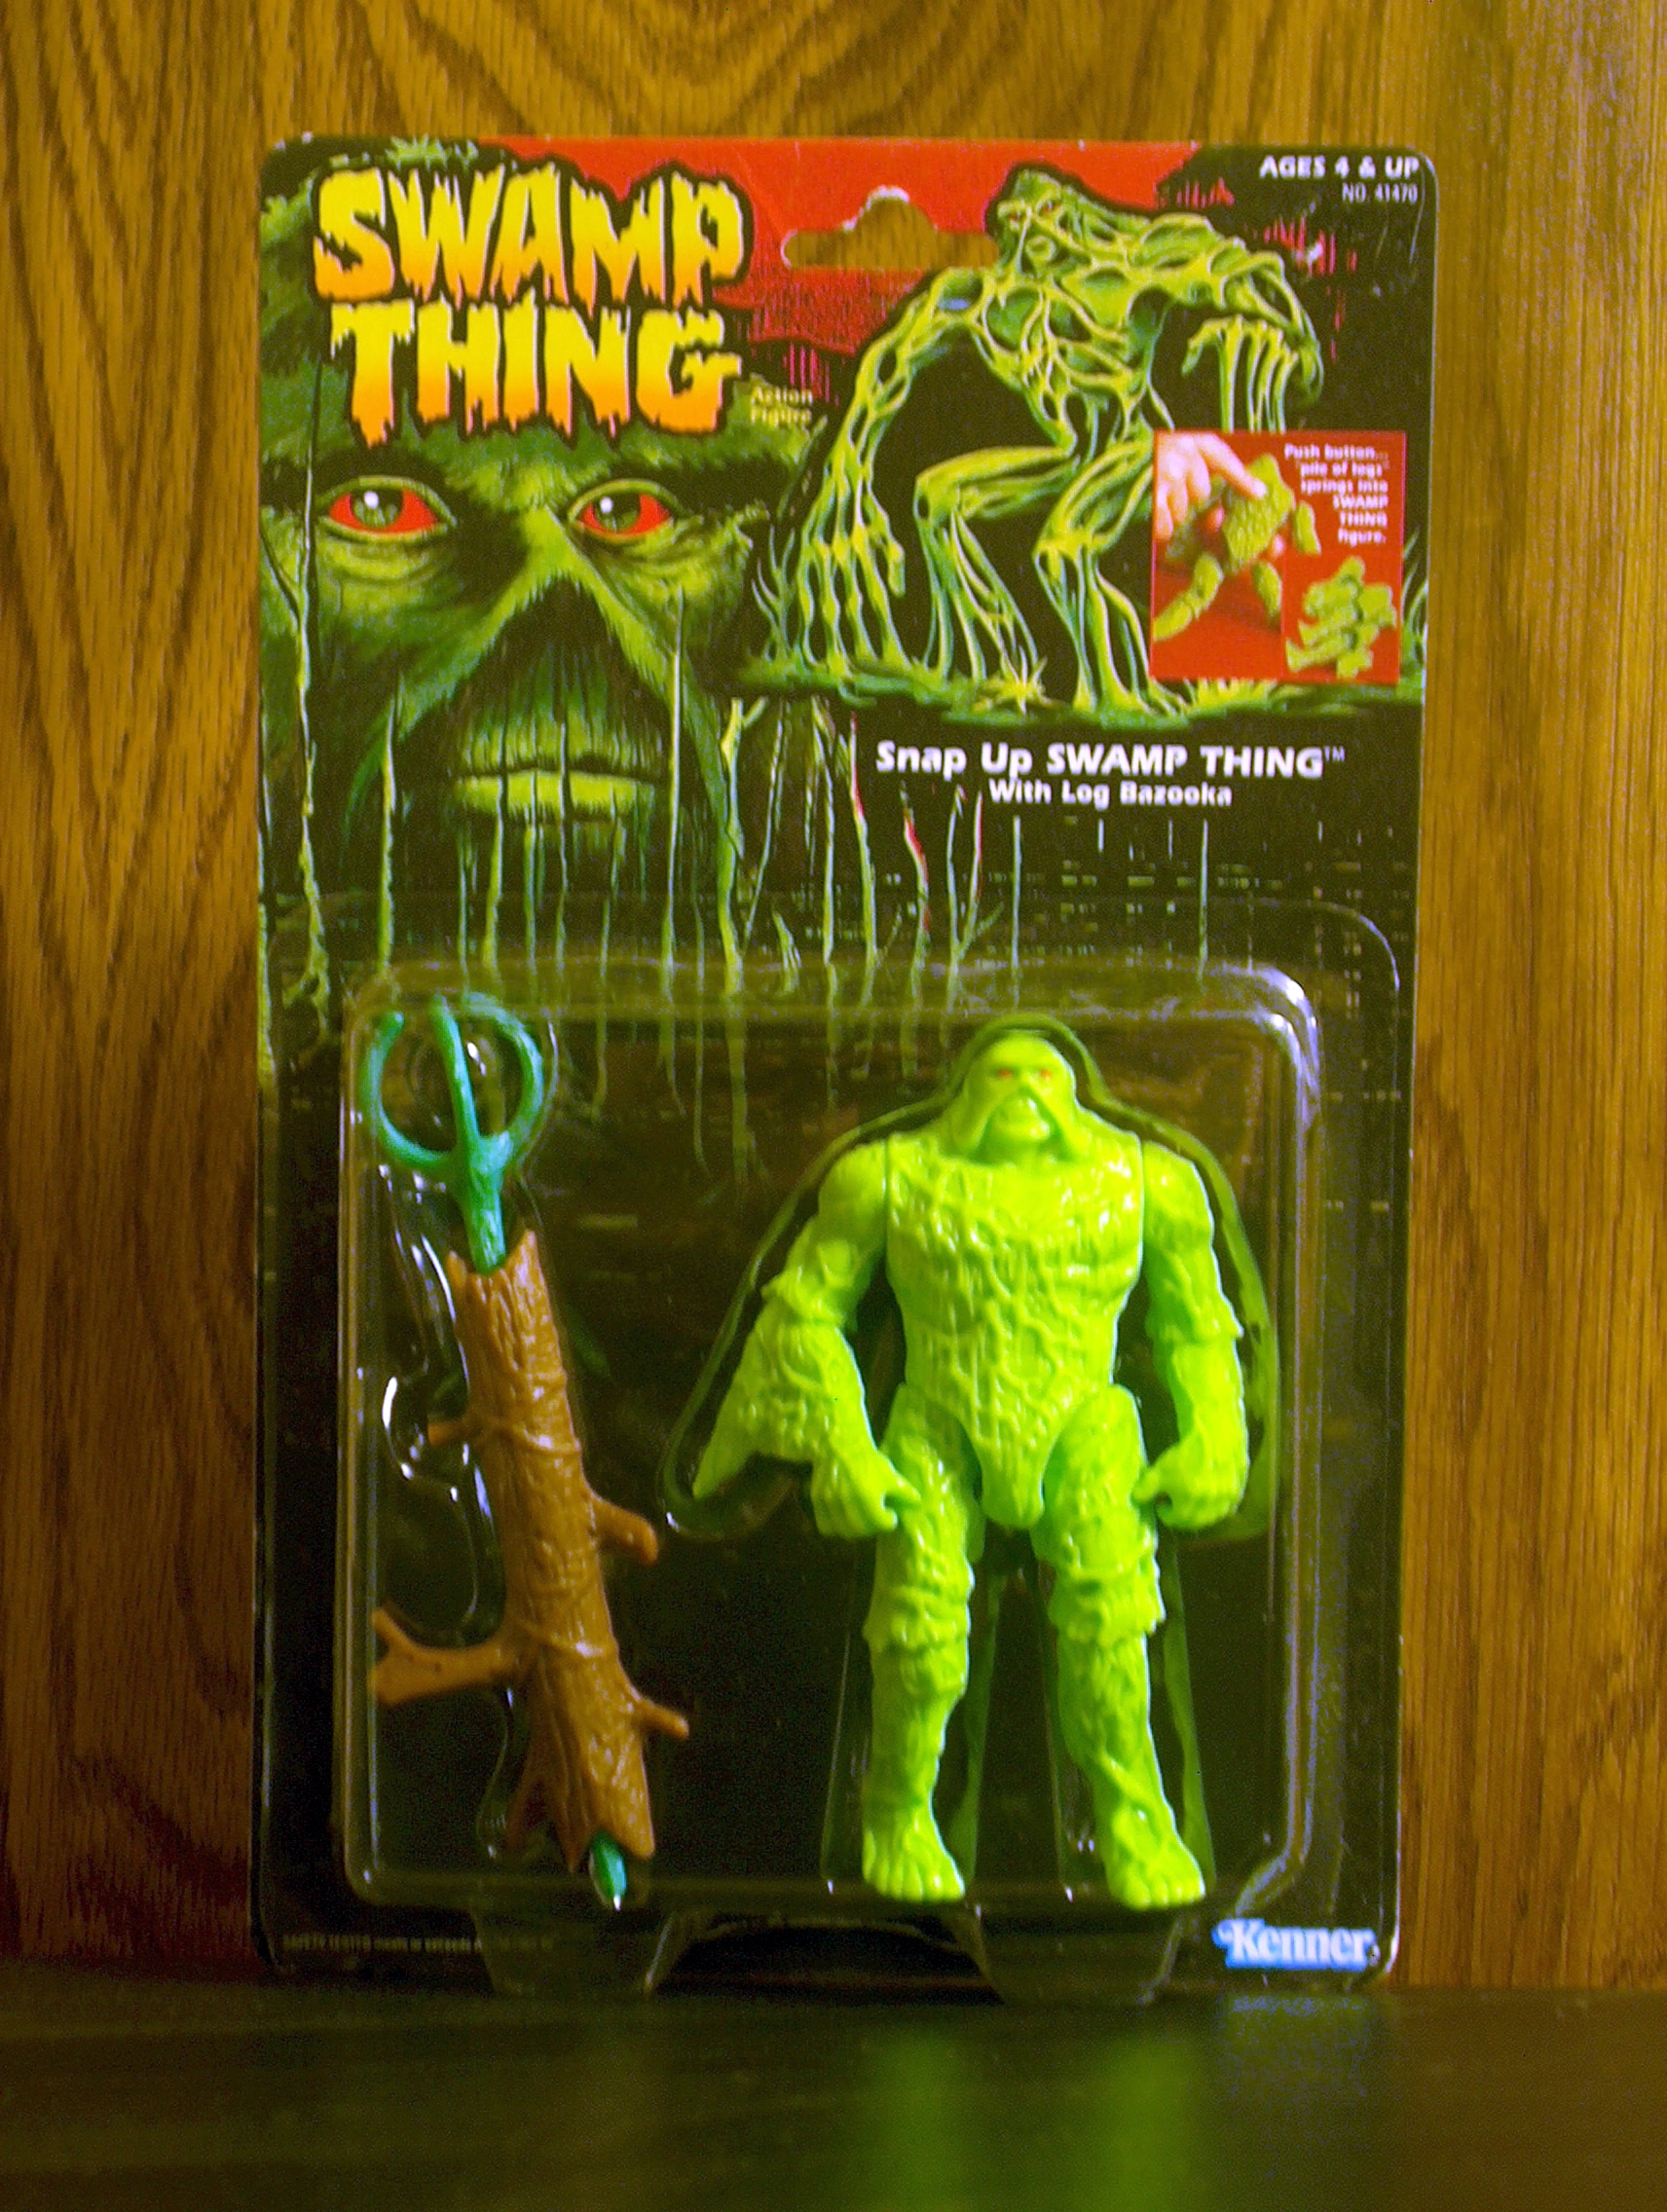 Snap Up Swamp Thing with Log Bazooka